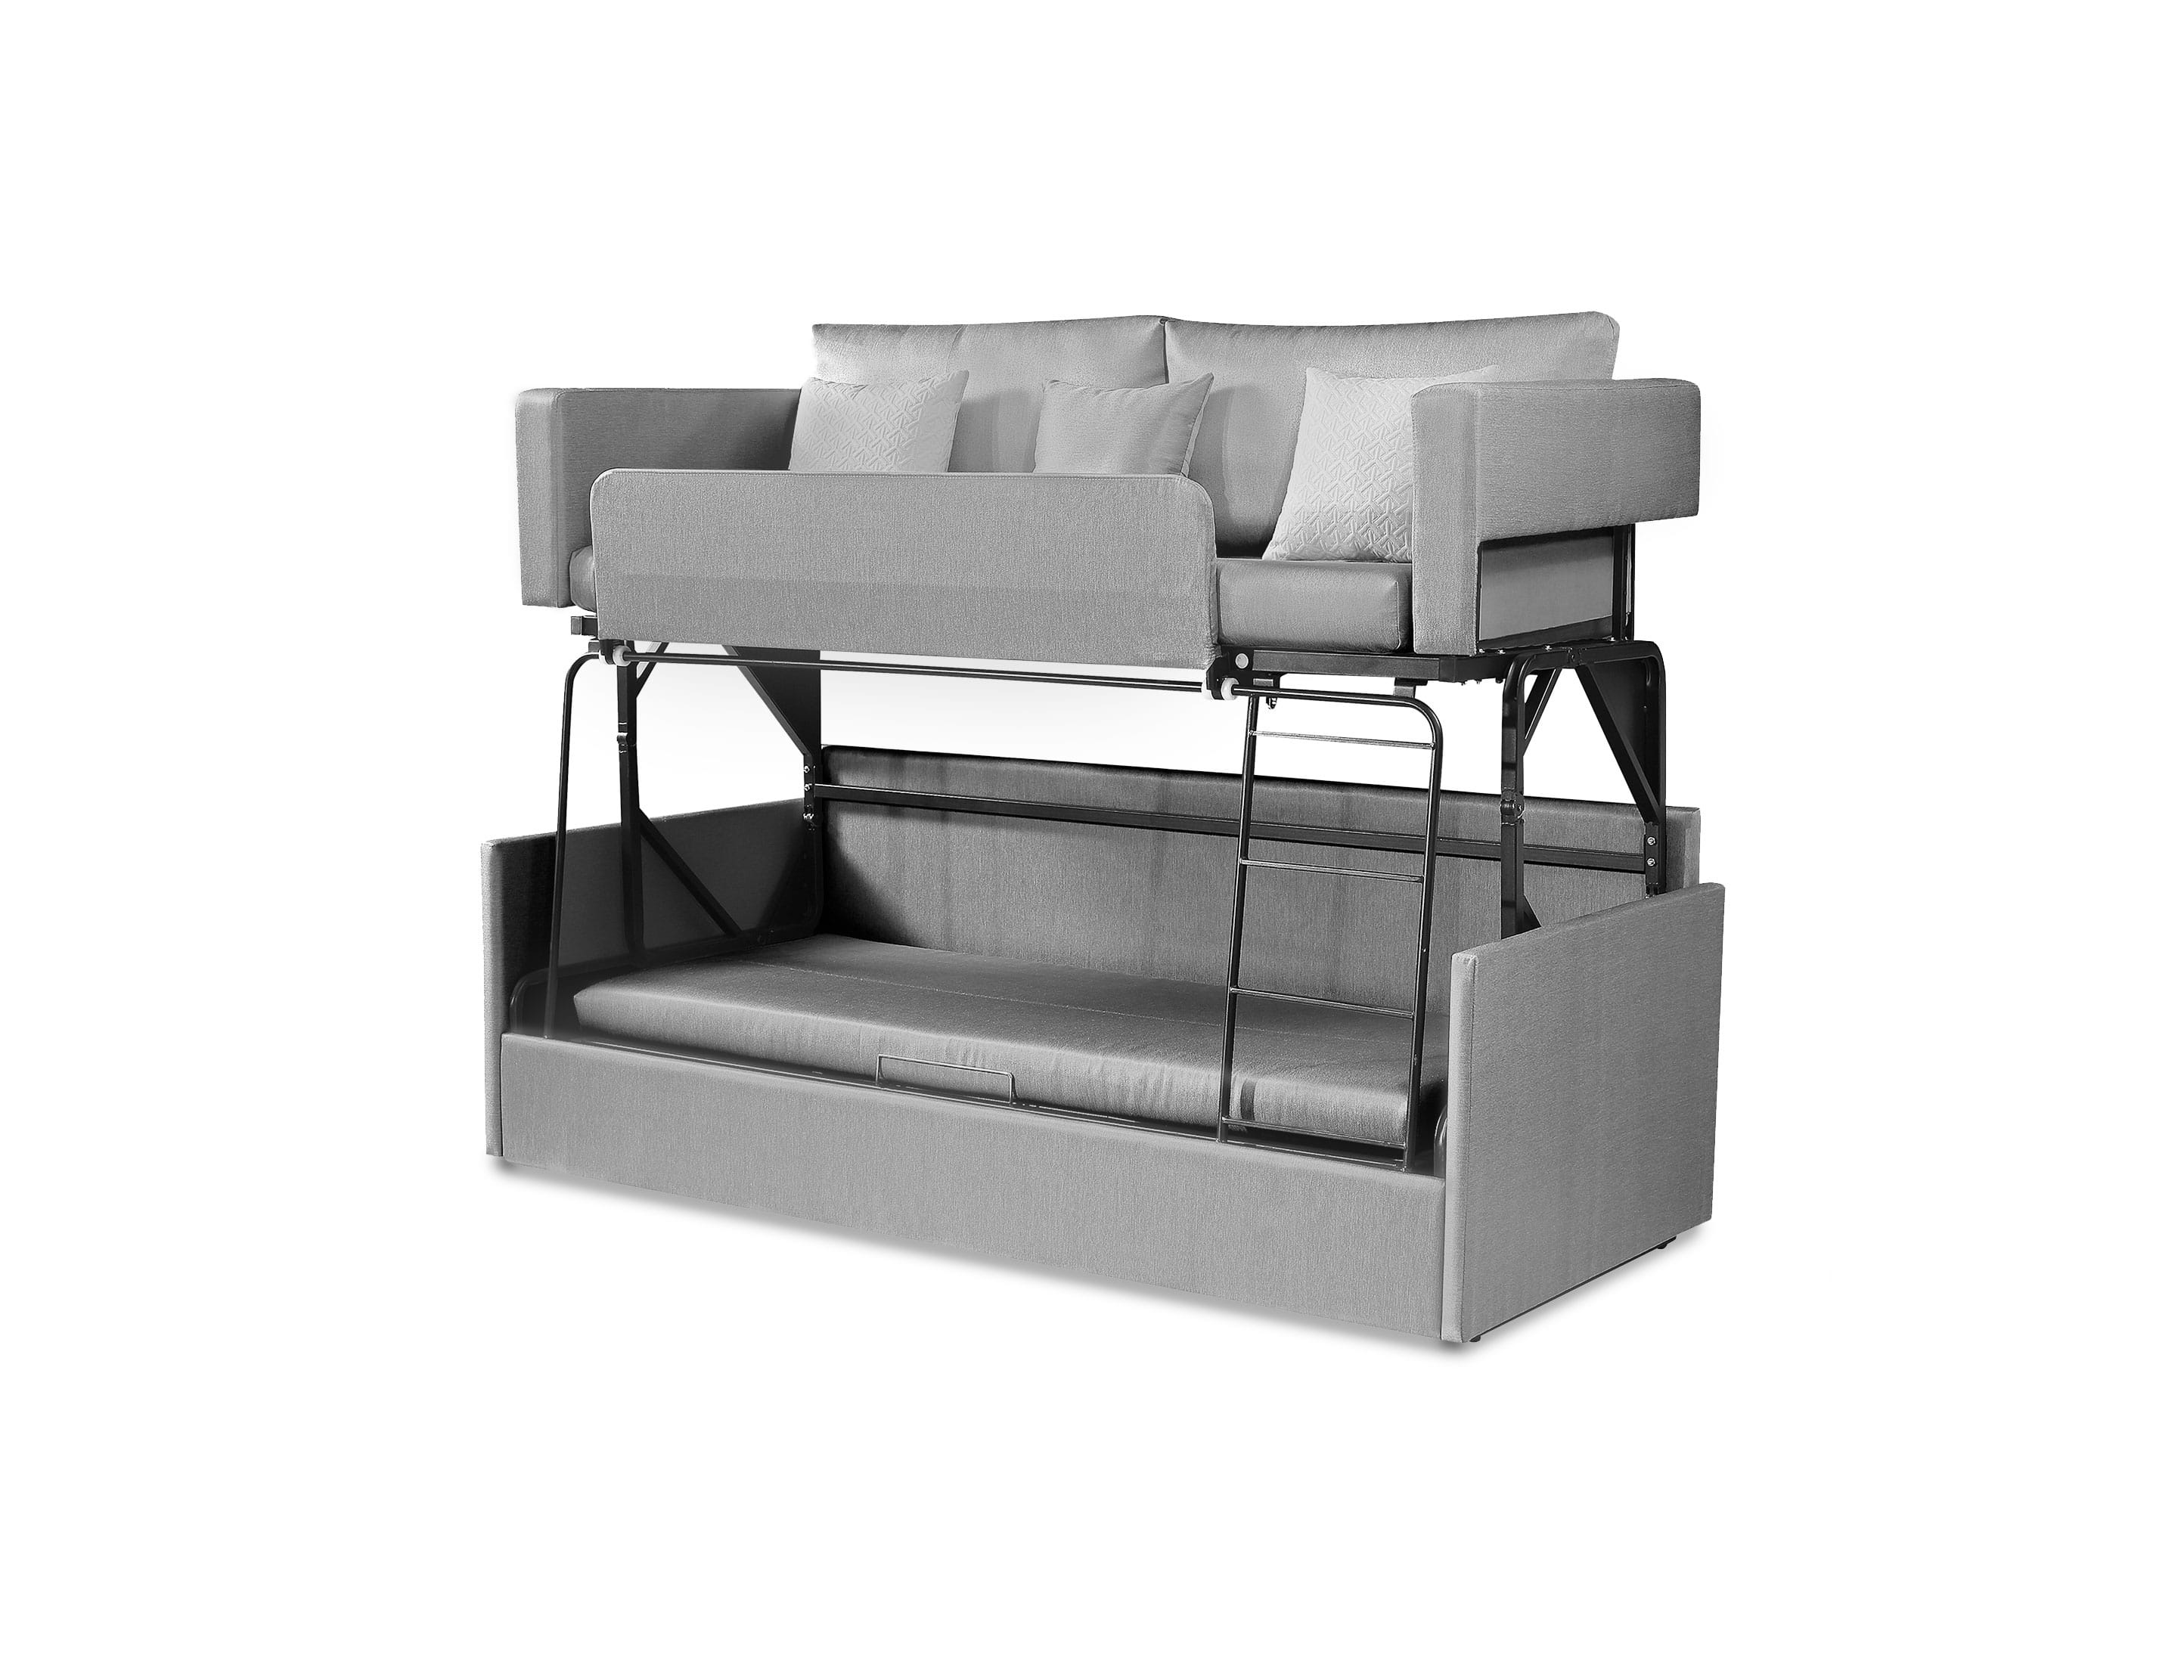 The Dormire Bunk Bed Couch